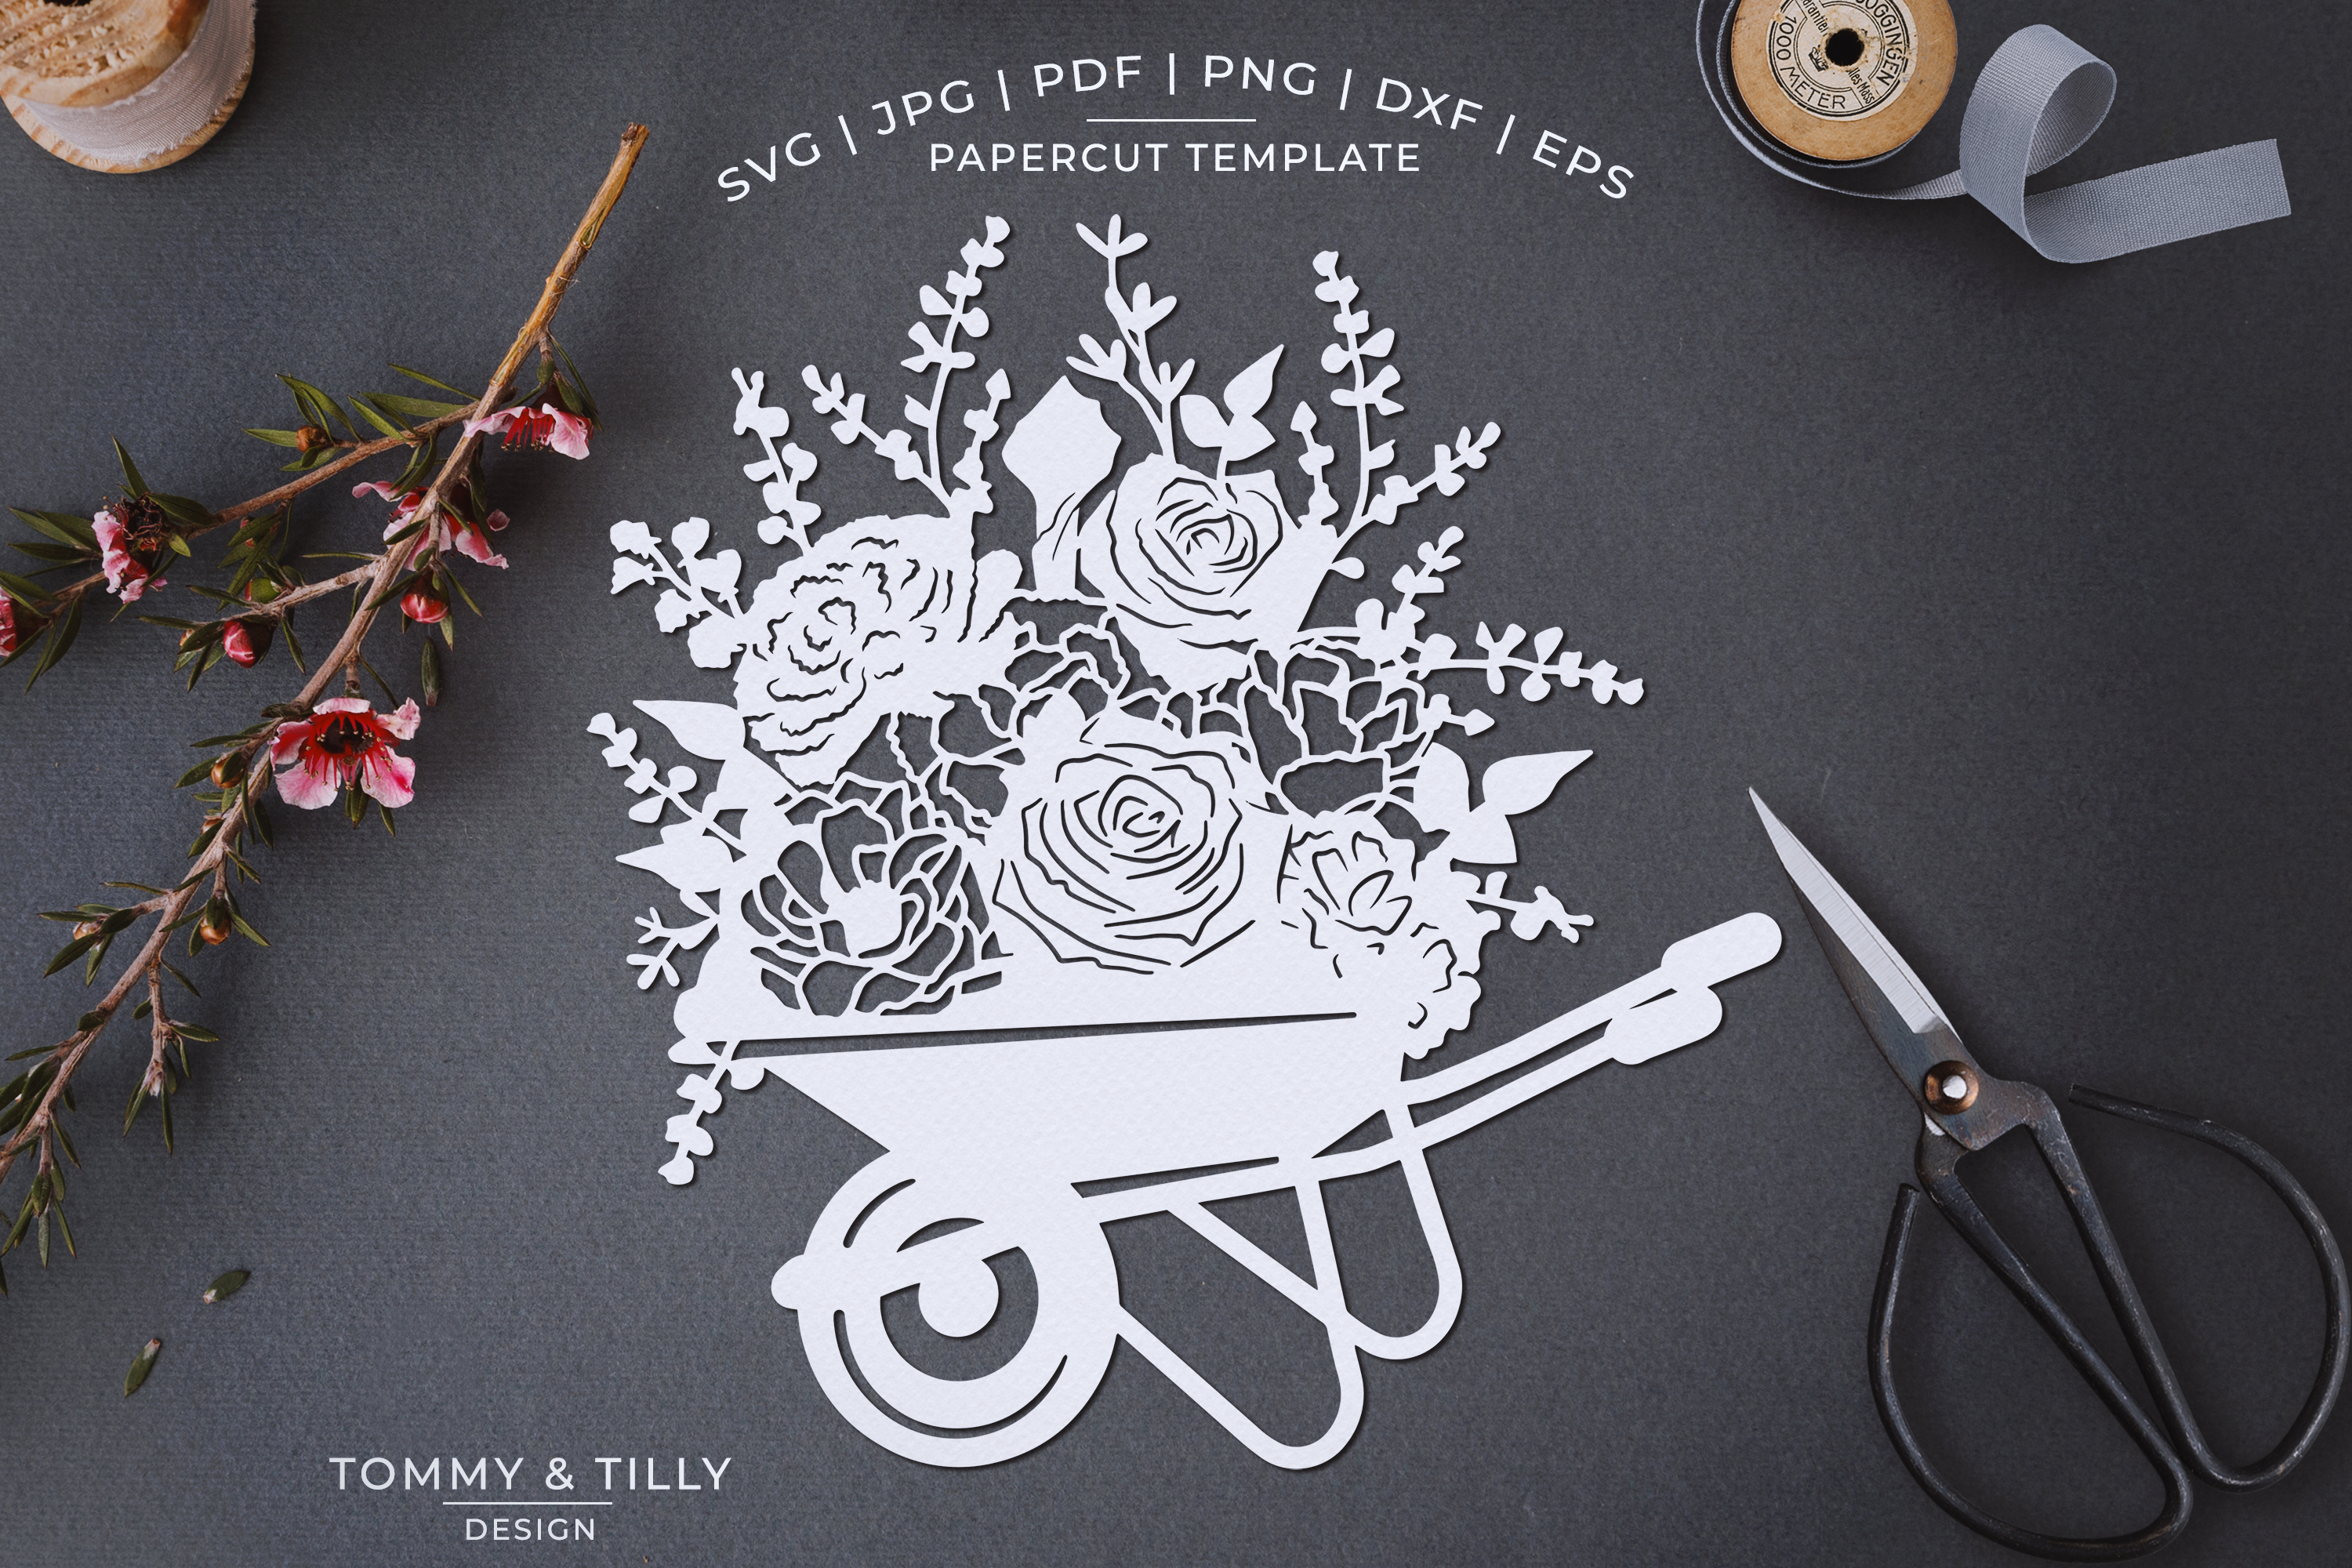 Romantic Floral Wheelbarrow - Papercut Template SVG JPG PNG example image 1